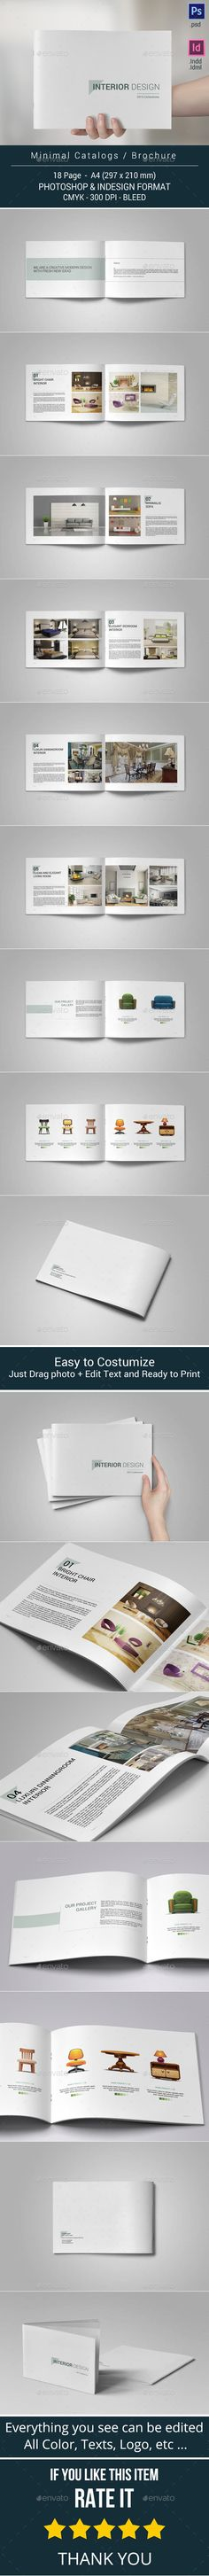 Multipurpose Catalogs / Brochure / Portfolio — Photoshop PSD #template #grey • Available here → https://graphicriver.net/item/multipurpose-catalogs-brochure-portfolio/10402343?ref=pxcr